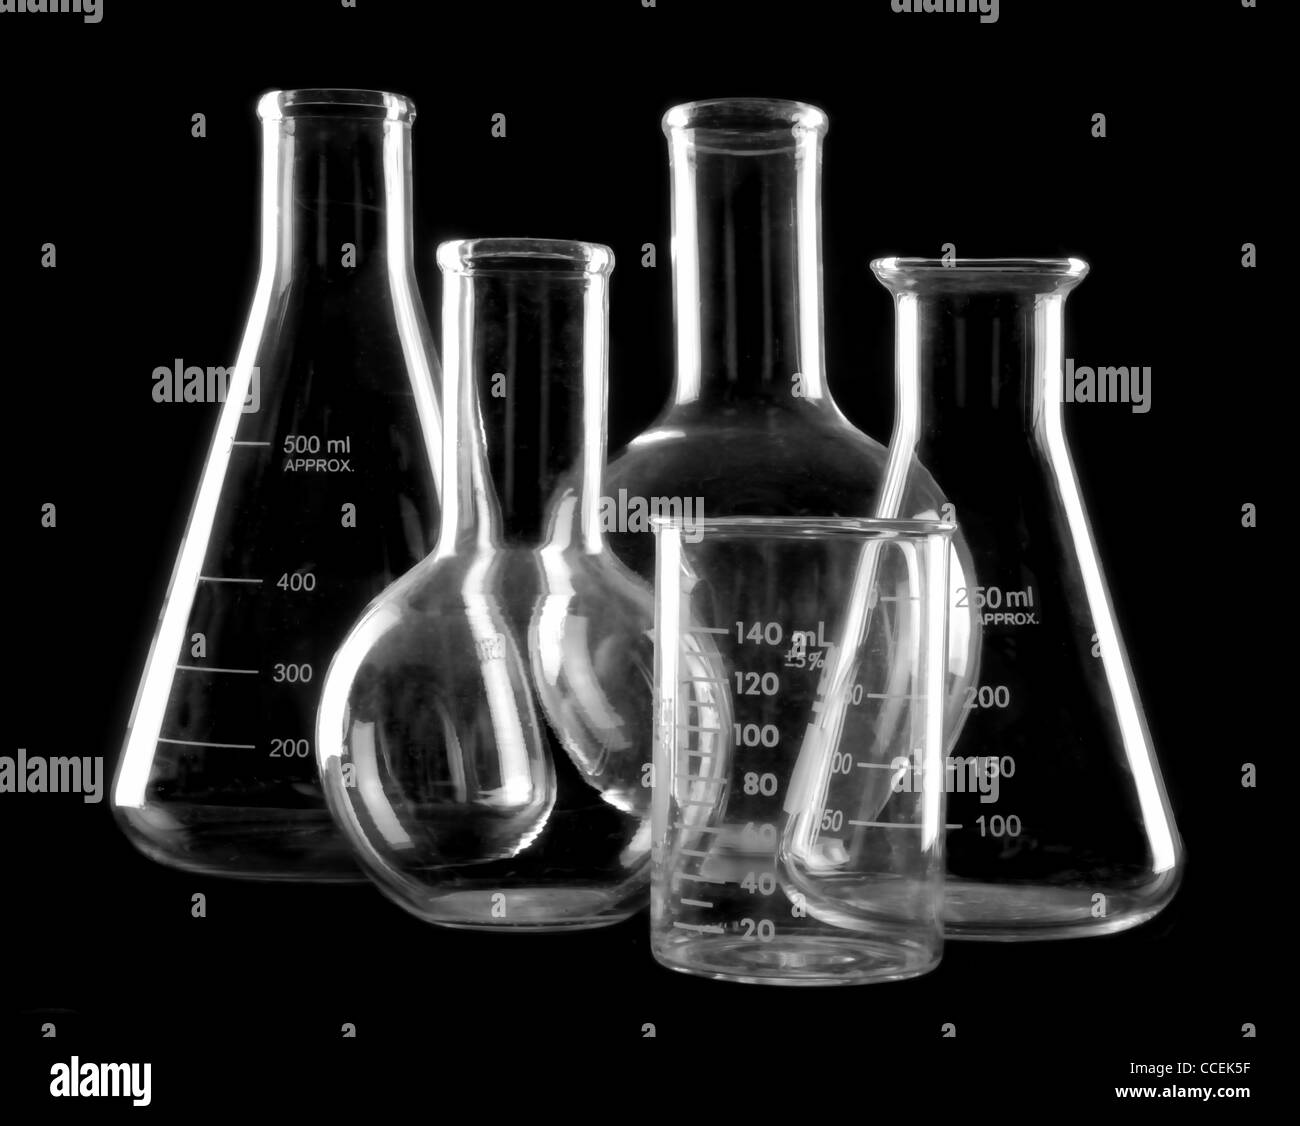 laboratory glassware: flasks and beakers - Stock Image